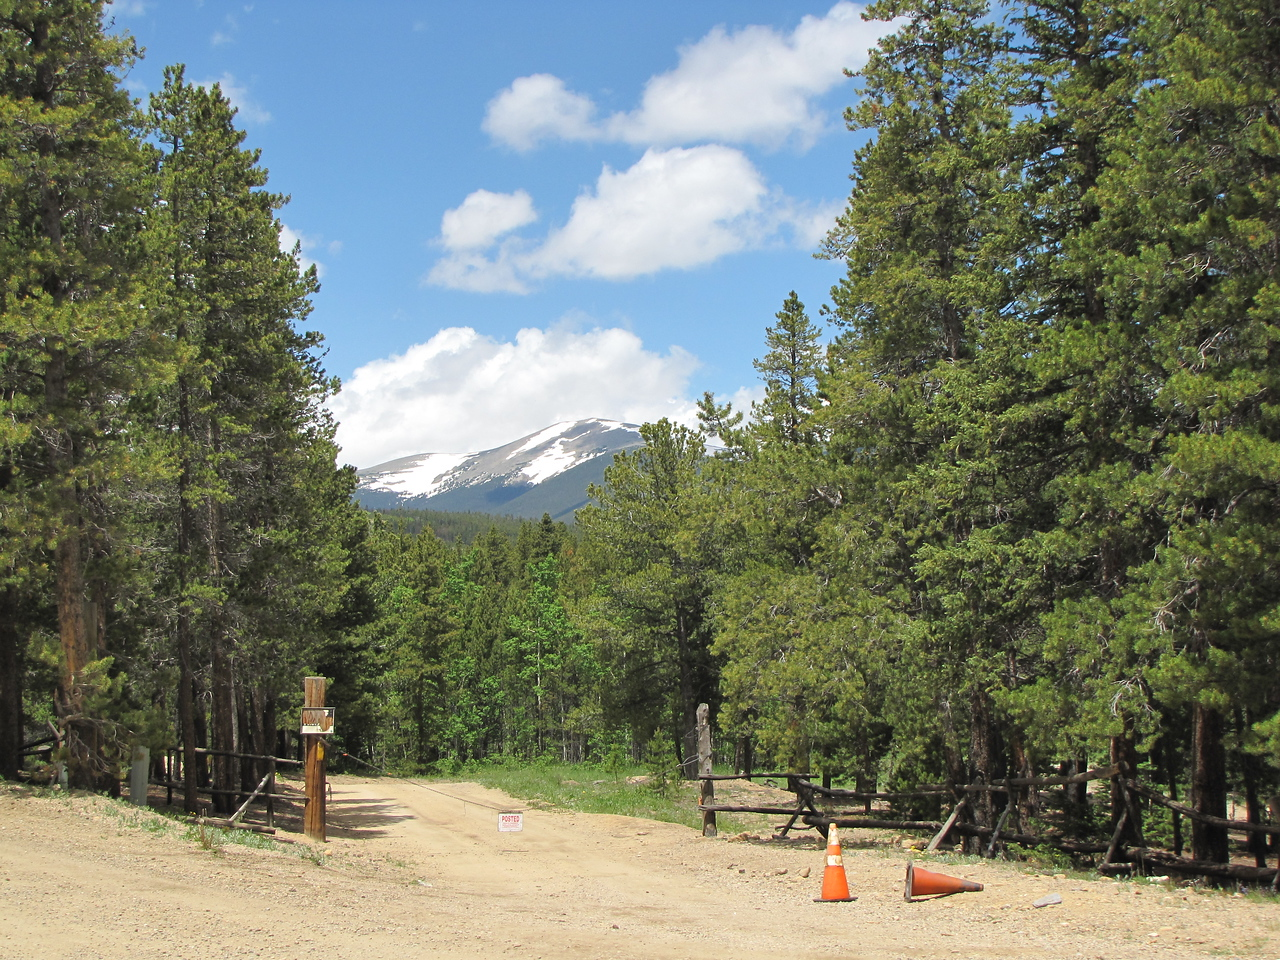 dirt road and mountains by the Boy Scout Camp